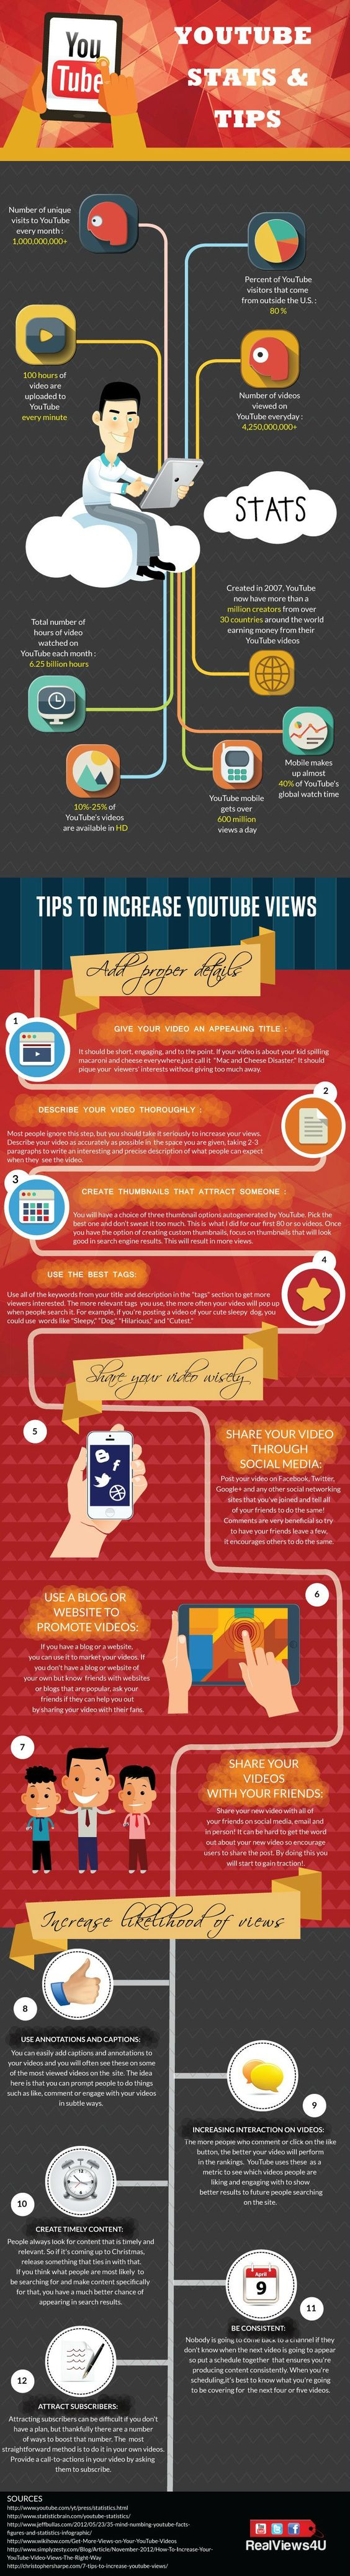 How to Maximize Your YouTube Views And Subscribers - Infographic: